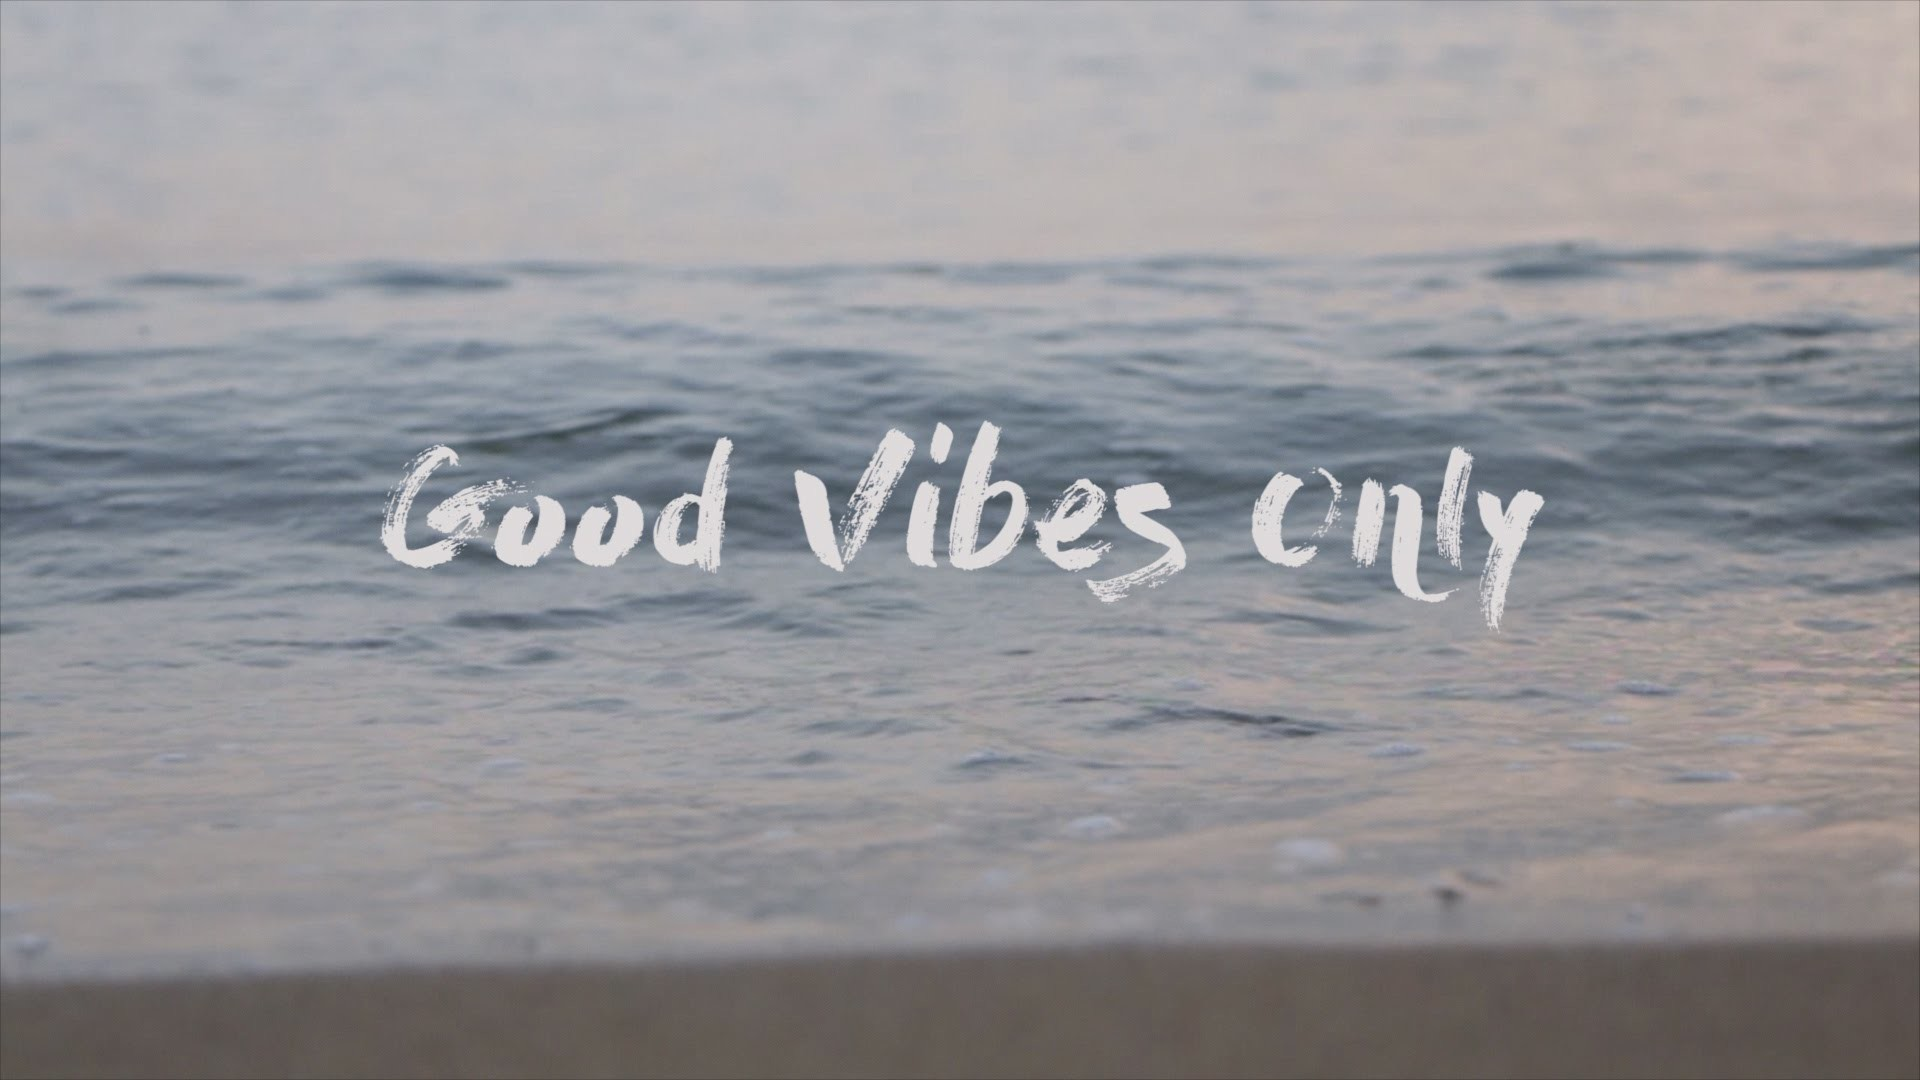 Old Iphone Wallpapers Good Vibes Only Wallpapers 71 Images